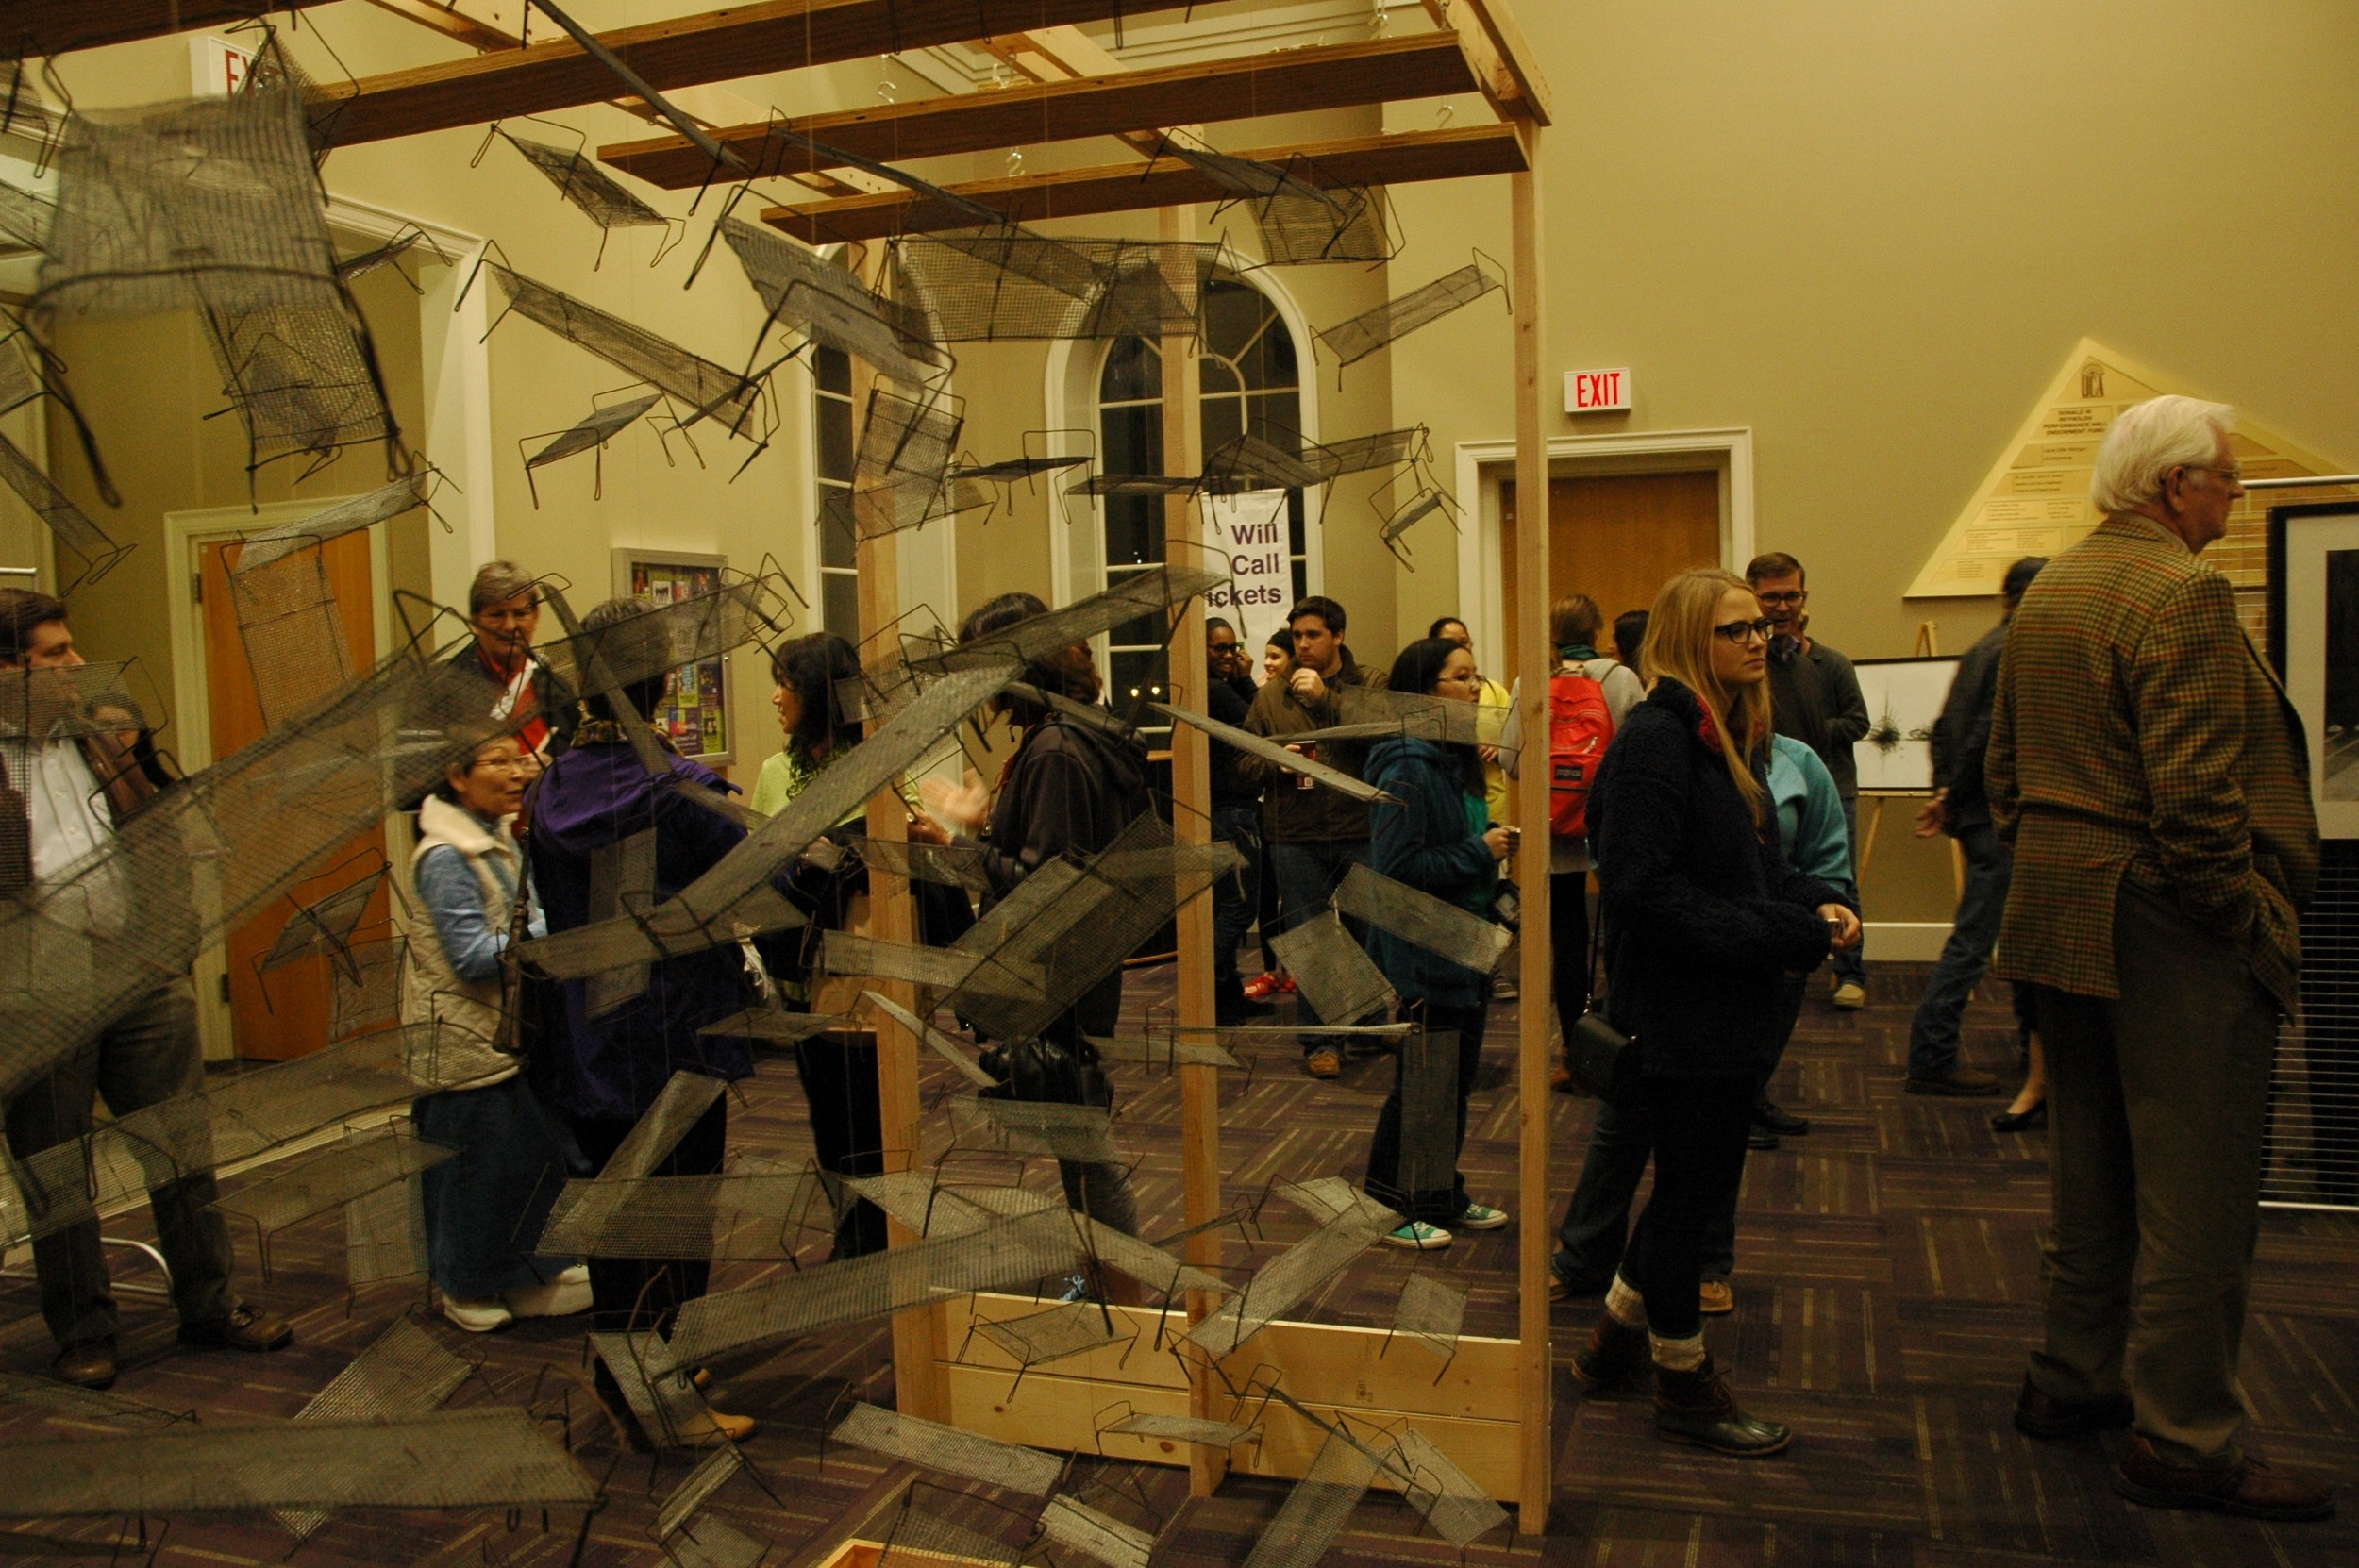 Exhibit at Reynolds Performance Hall, University of Central Arkansas for opening of Gaman  . Photo by Nancy Chikaraishi